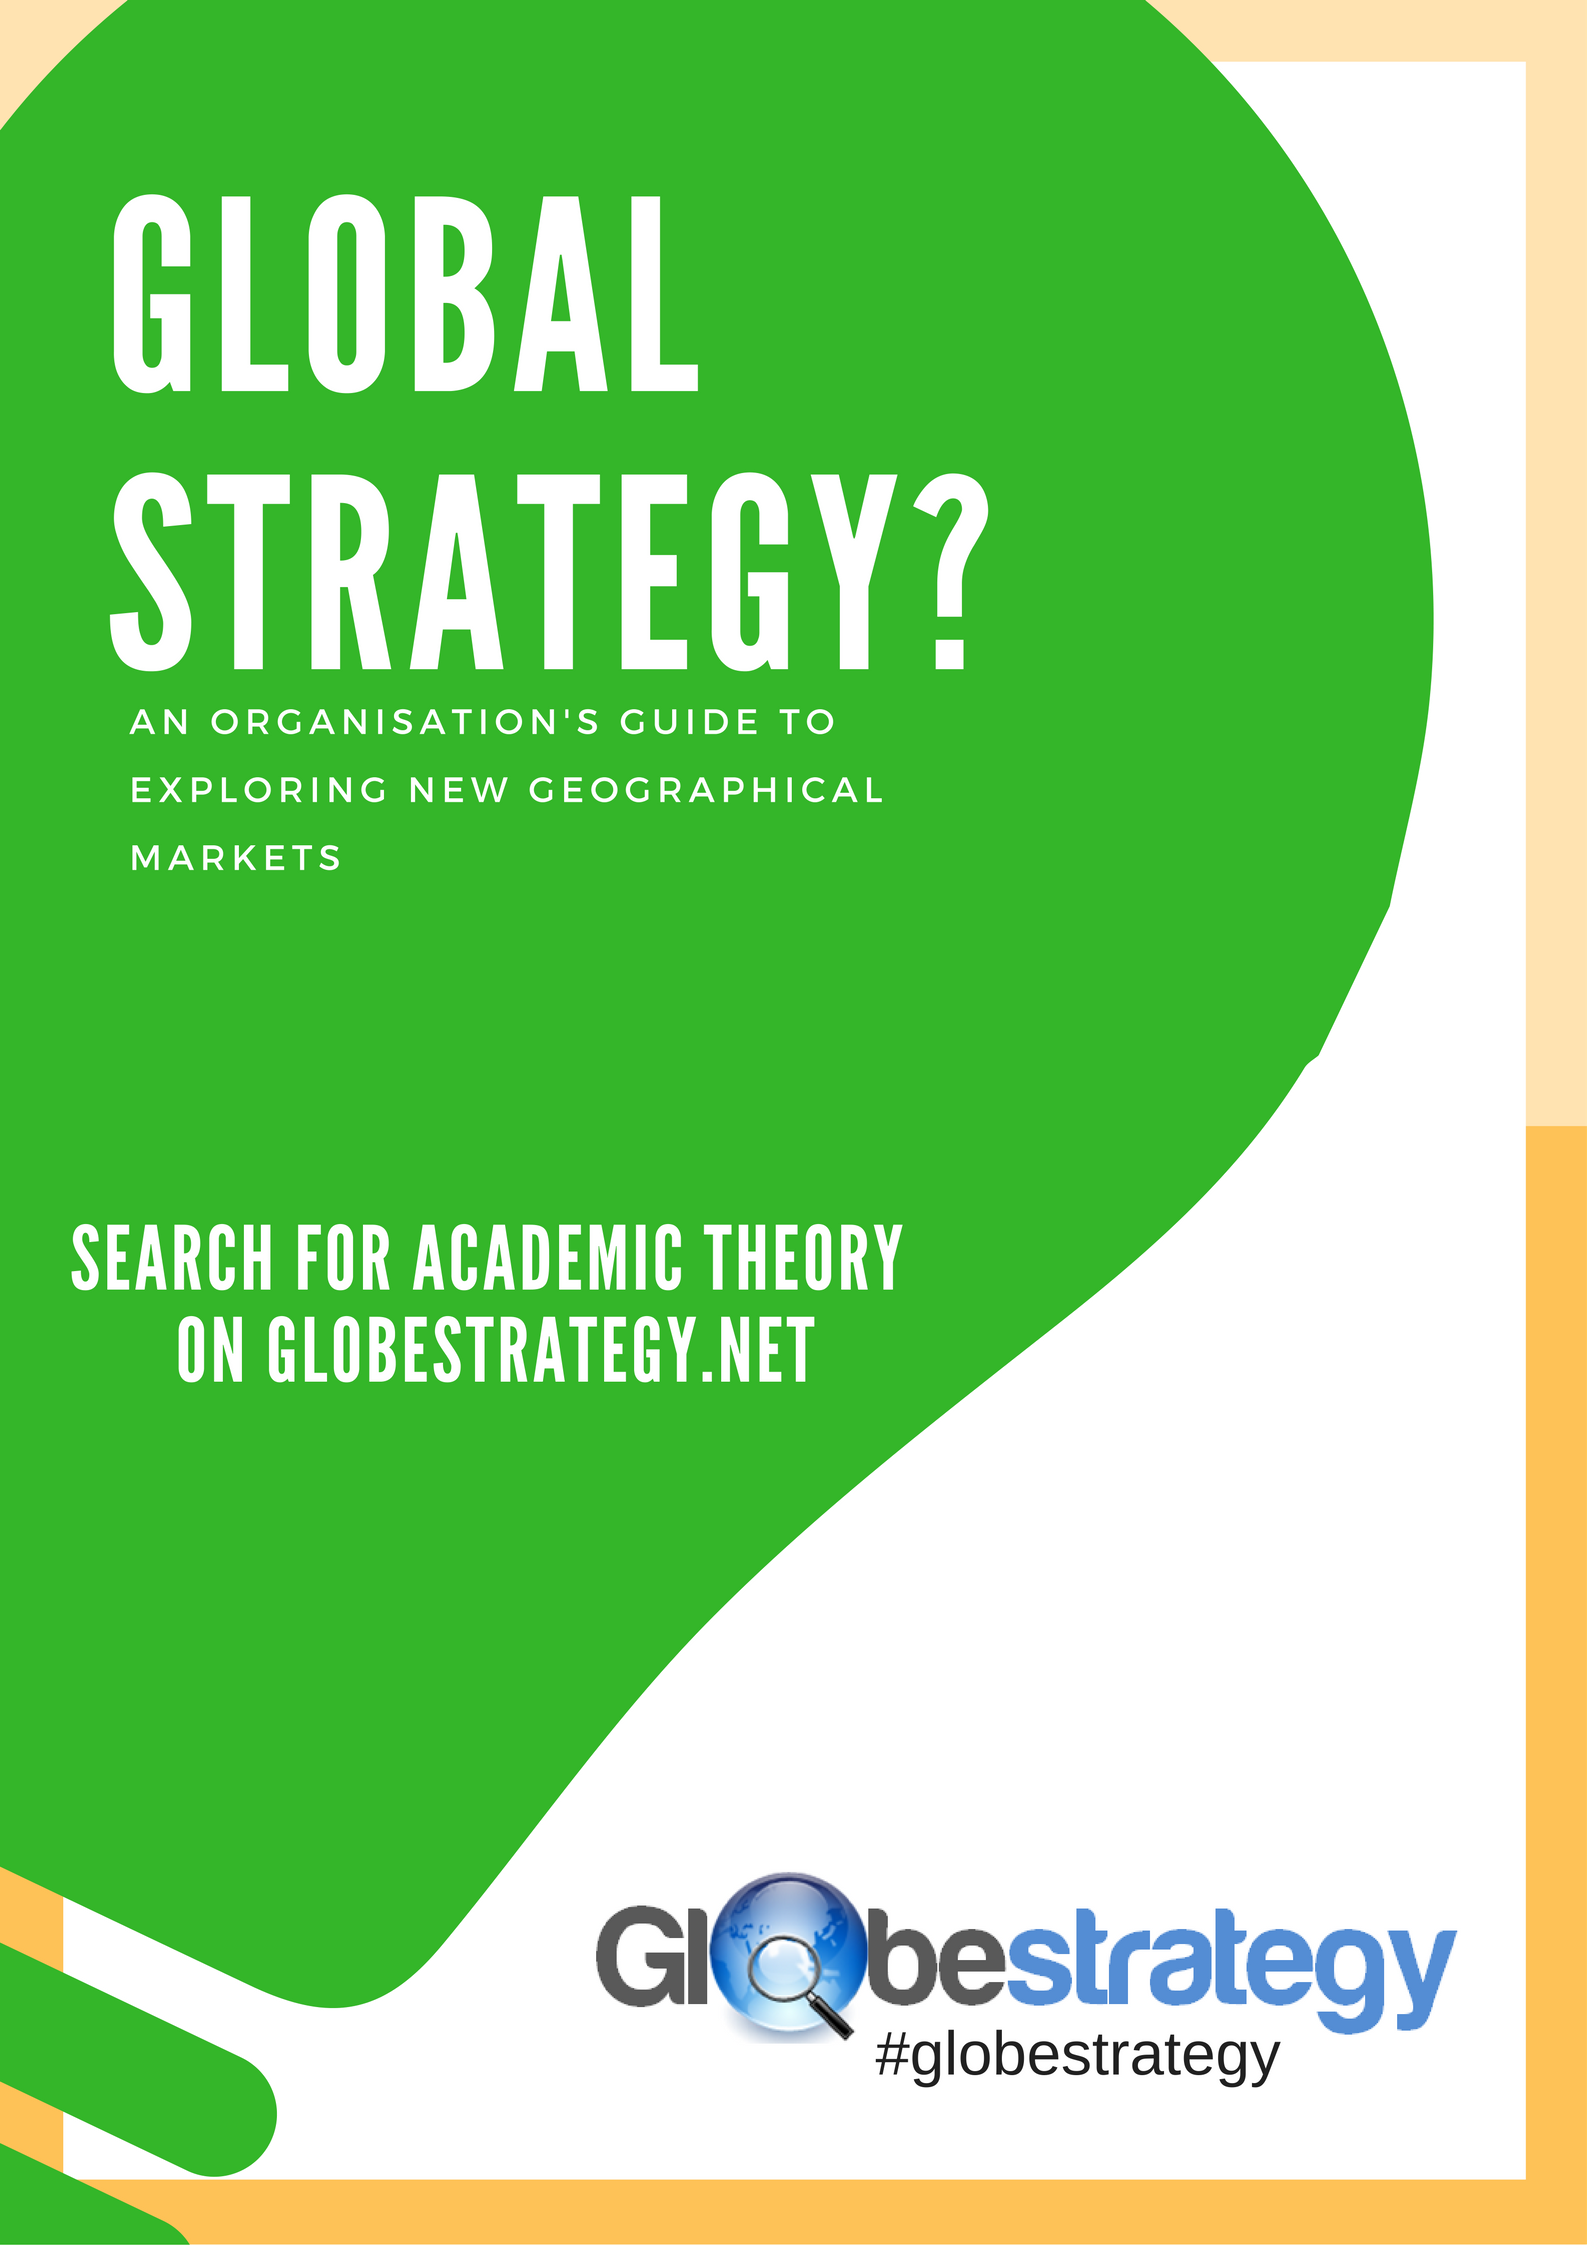 What is global strategy